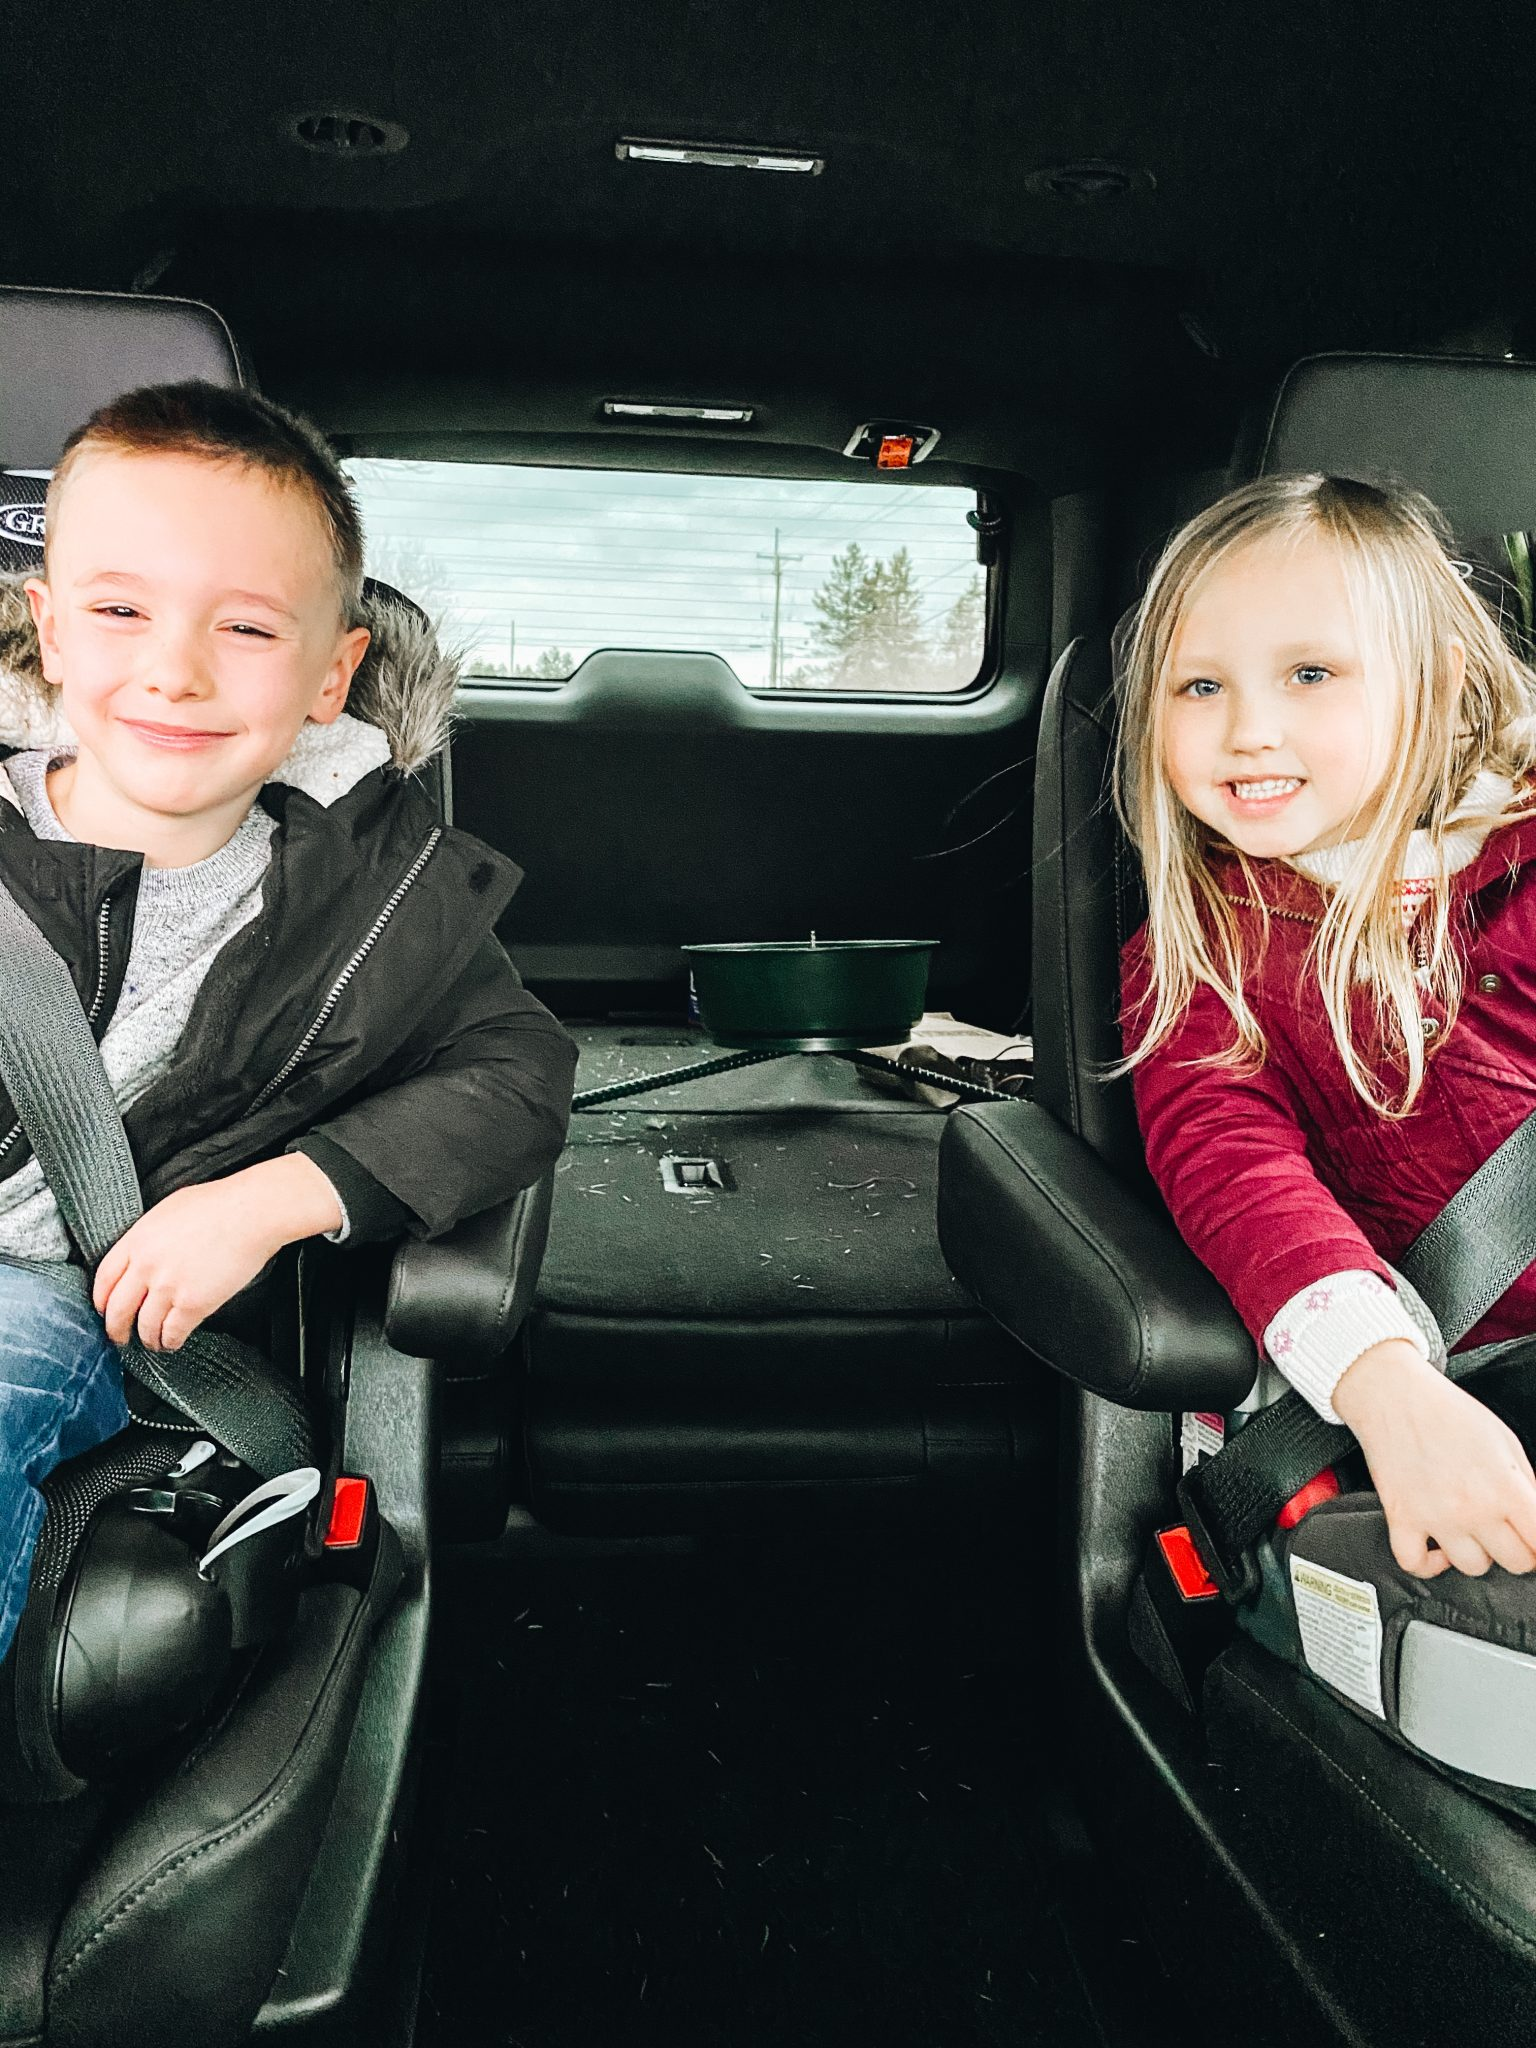 Winter outings with the family | Daily Splendor Life and Style Blog | Kids #familychristmas #holidayfestivities #familyadventures #chevytahoe #2020activities #lifewith littles #Christmastree #momlife